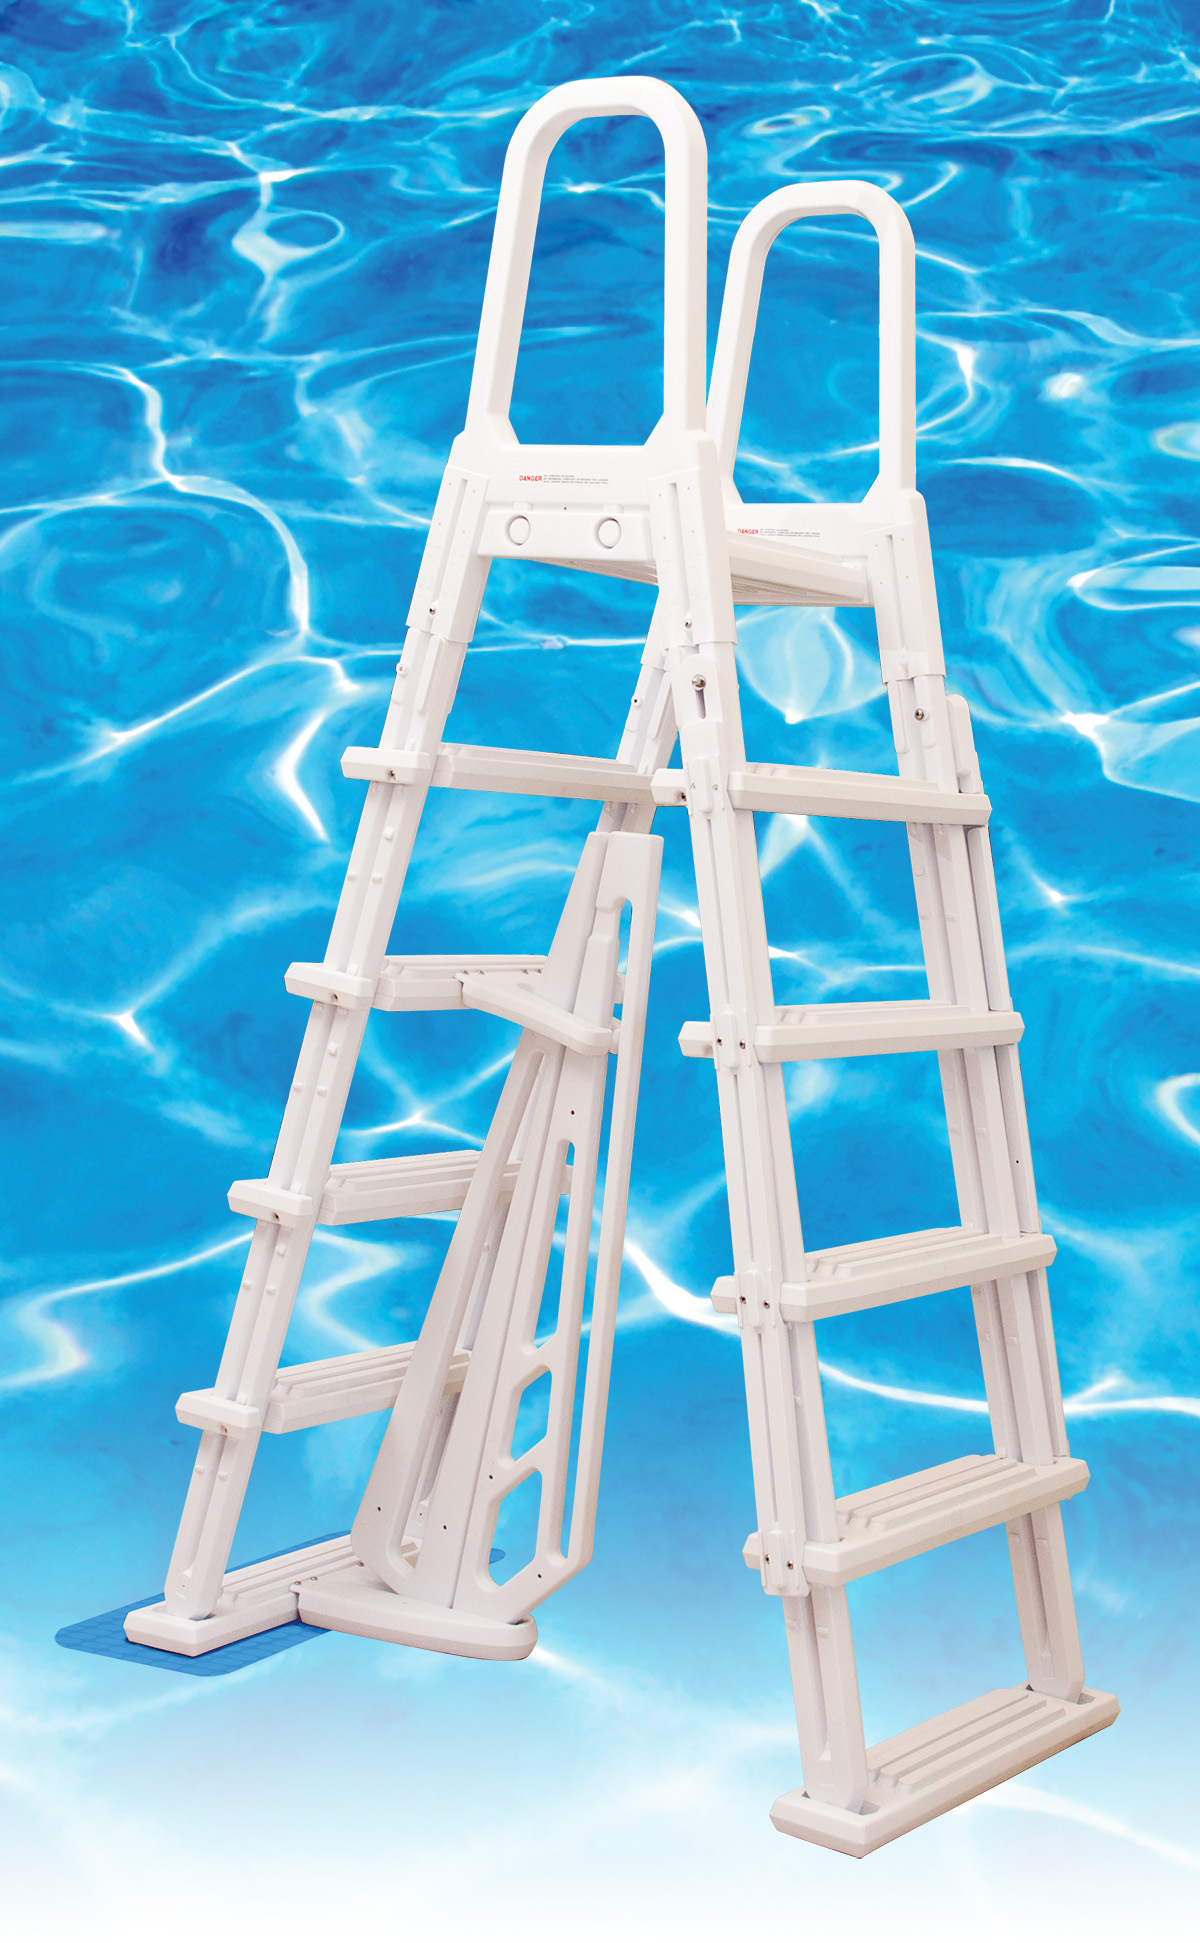 Steps Above Ground Pool Without Deck